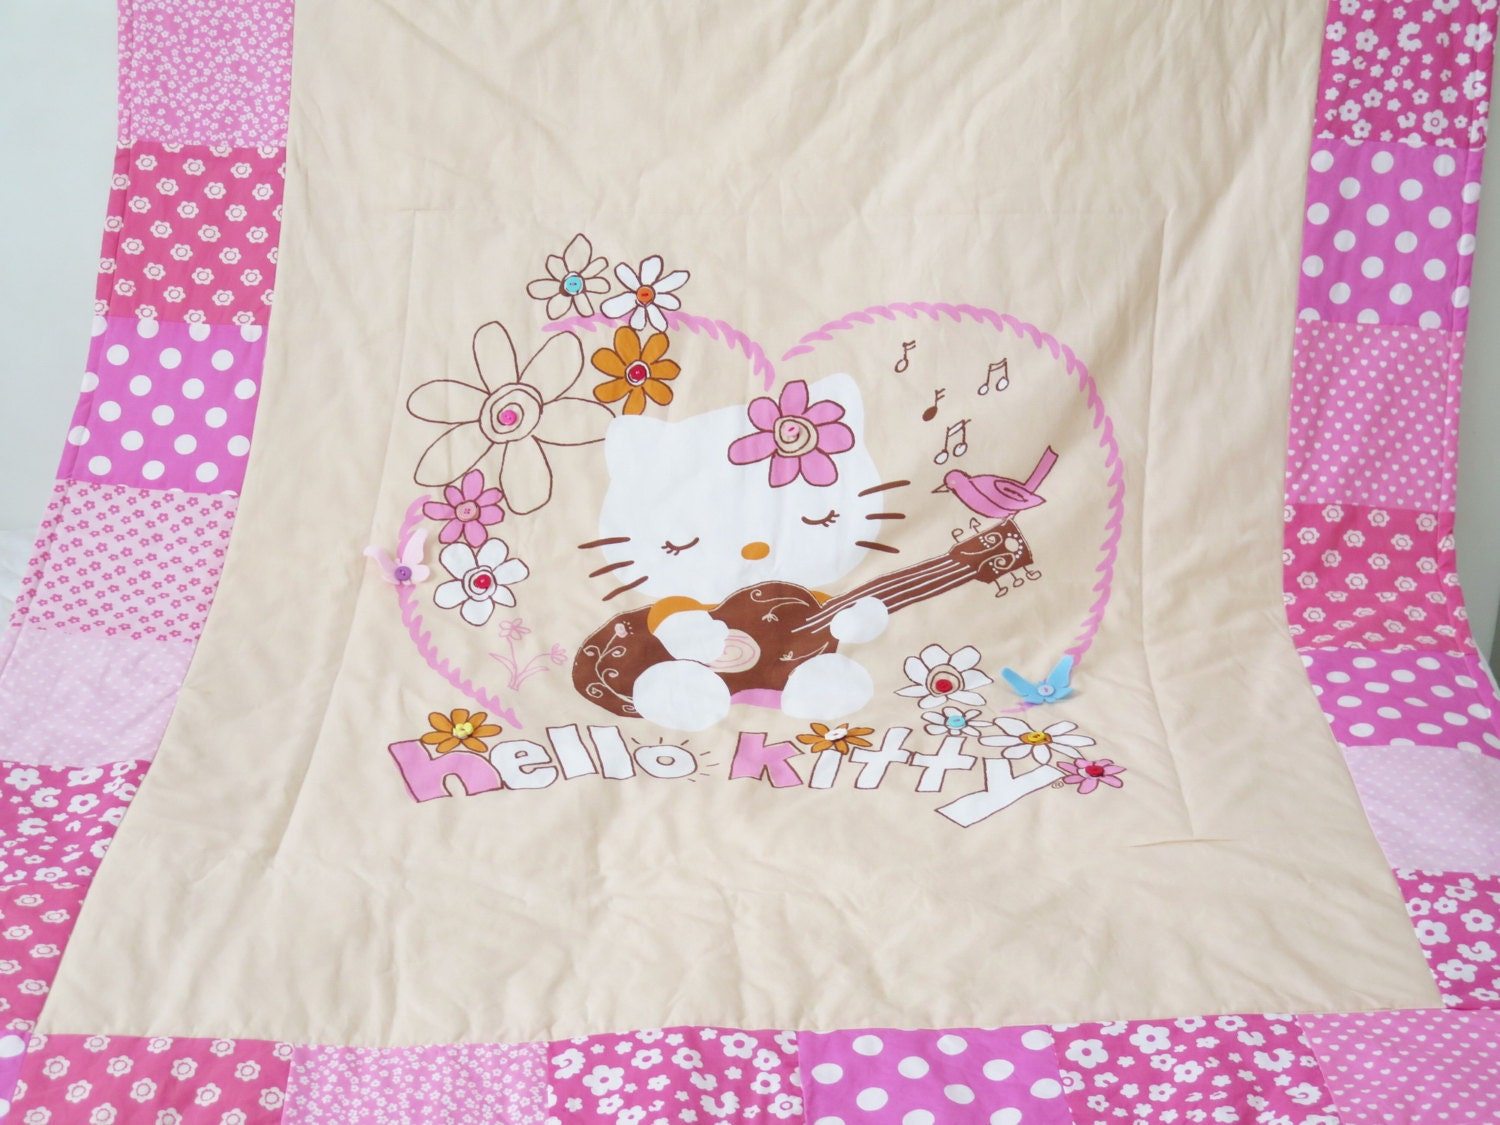 Hello kitty crib for sale - Hello Kitty Quilt Blanket Personalized Baby Blankets Personalized Quilt Homemade Quilt Baby Quilt For Sale Girl Bedding